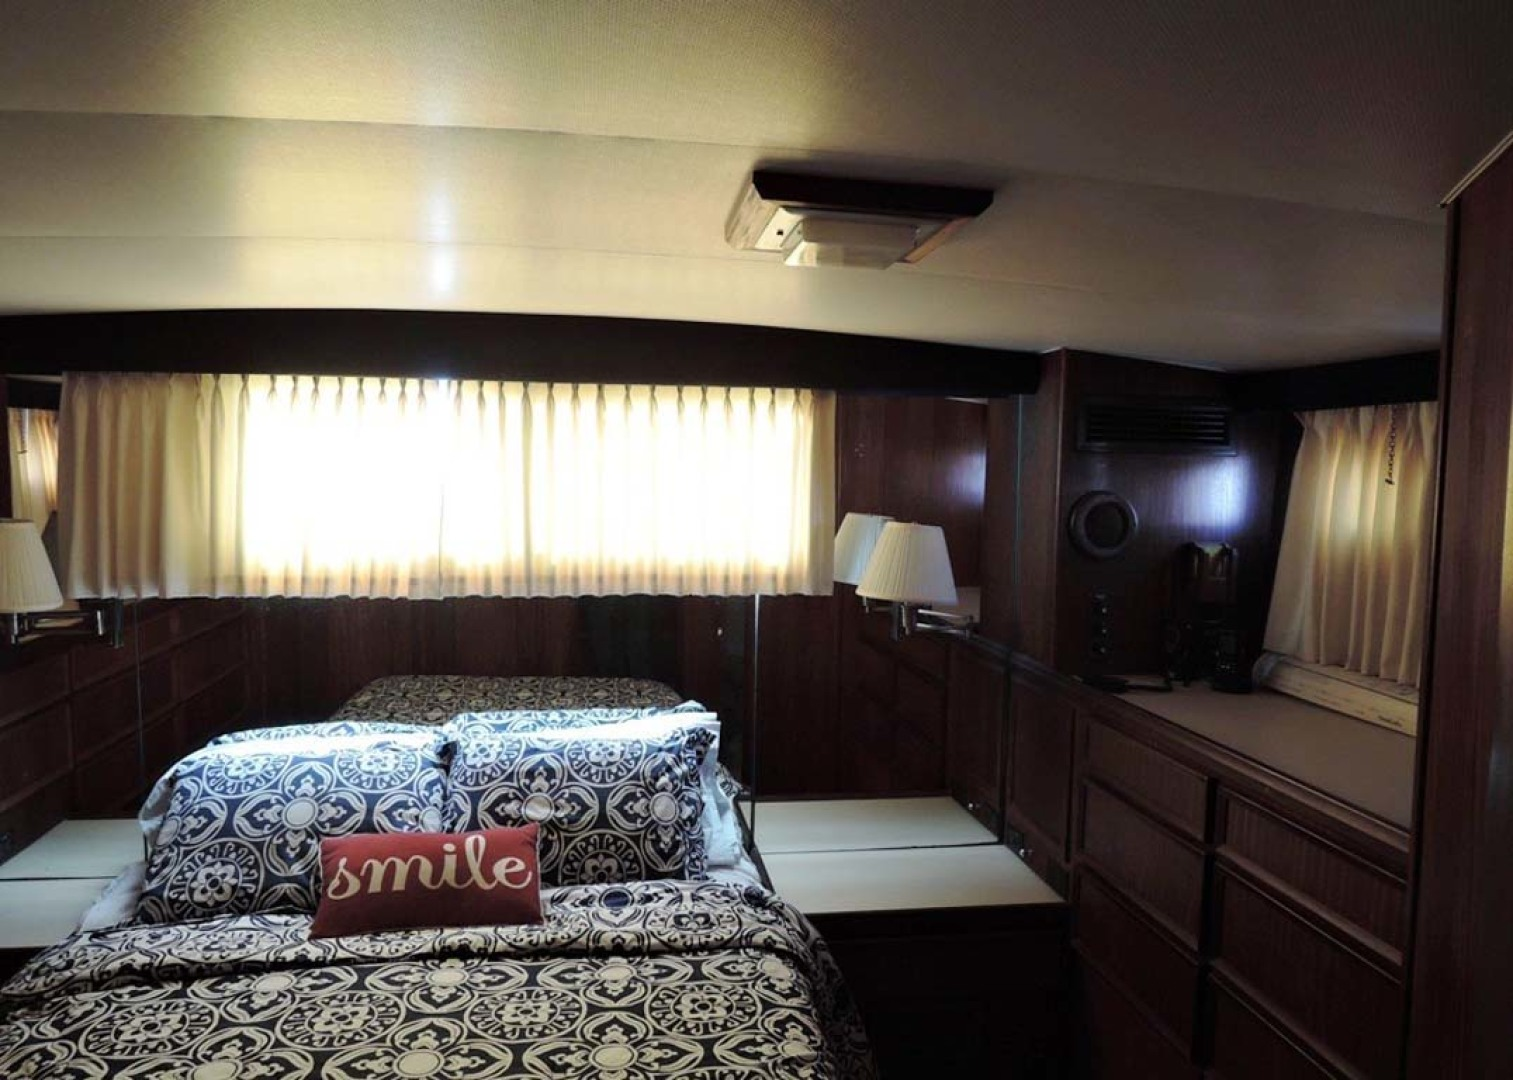 Hatteras-Cockpit Motoryacht 1983-Southern Cross Essex-Connecticut-United States-Master Stateroom-1155694 | Thumbnail